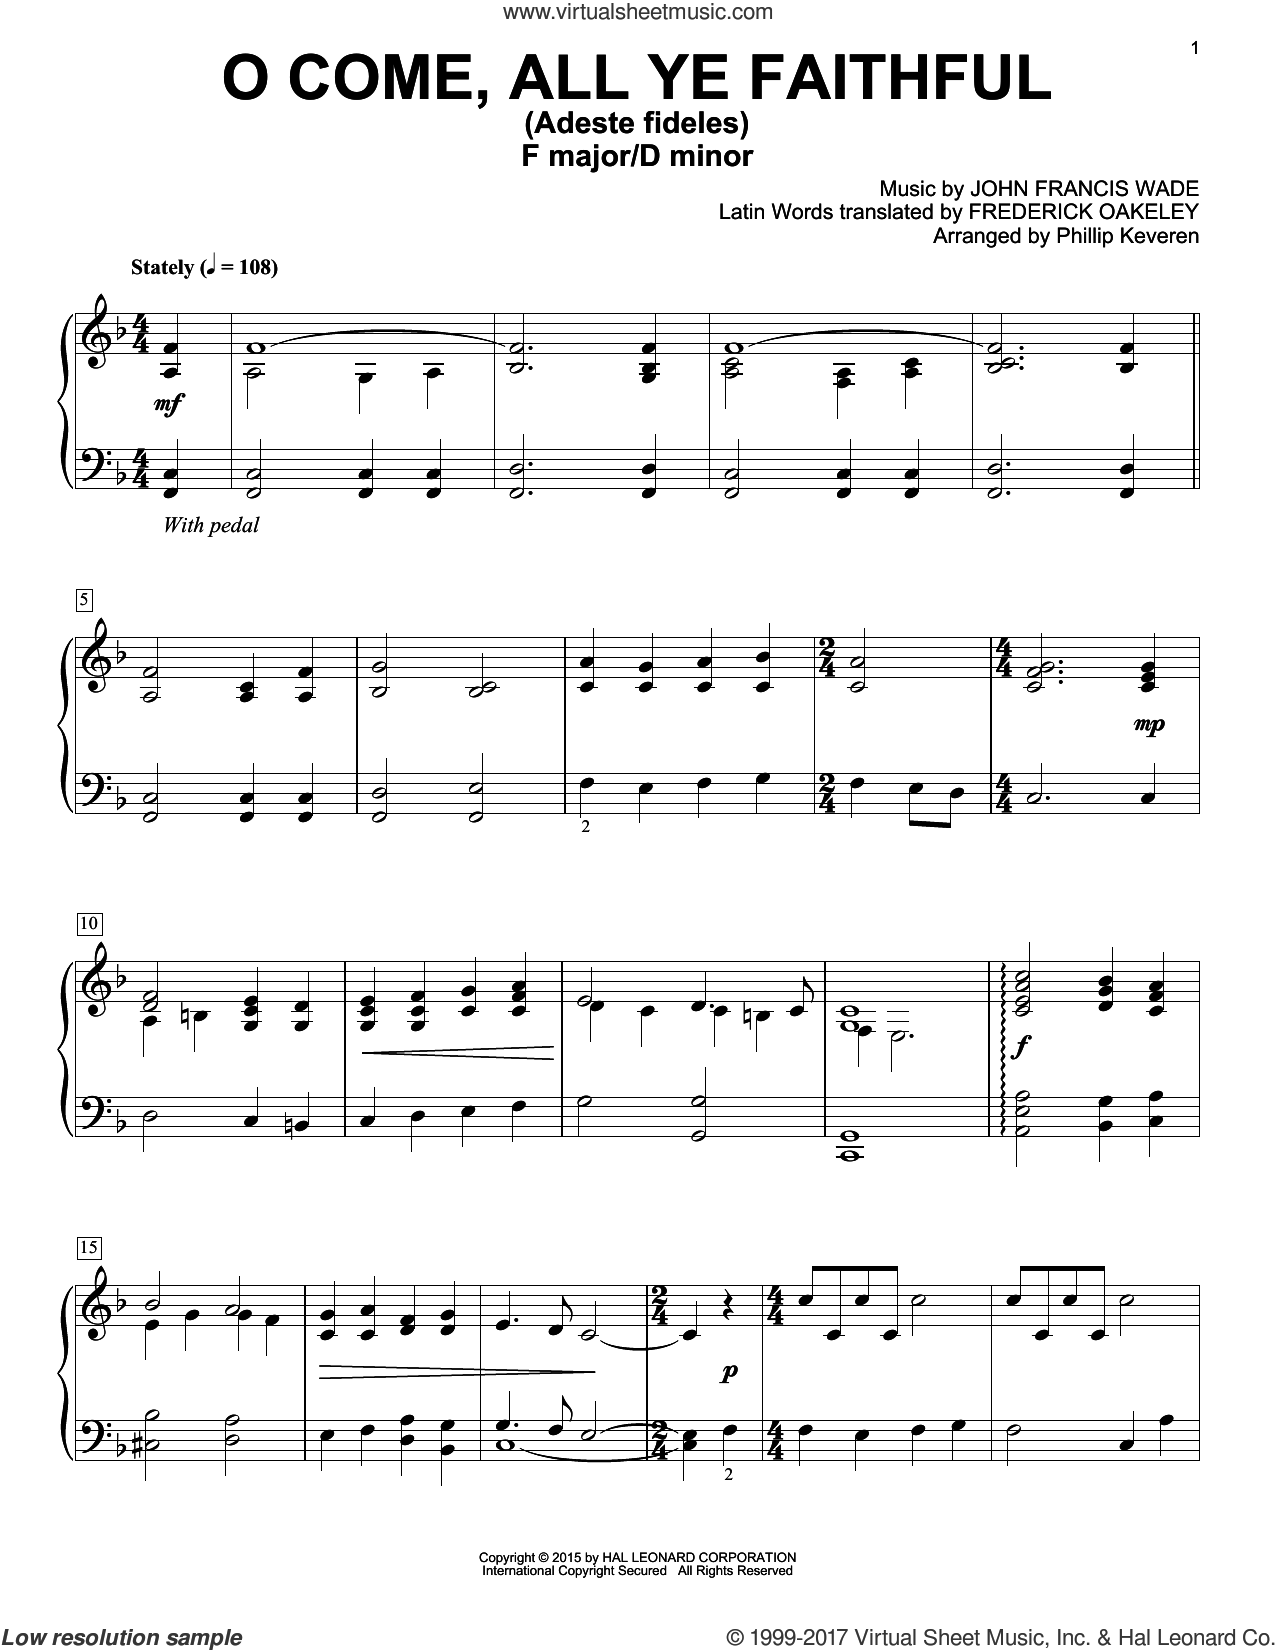 O Come, All Ye Faithful (Adeste Fideles) sheet music for piano solo by Phillip Keveren, Frederick Oakeley and John Francis Wade, intermediate skill level